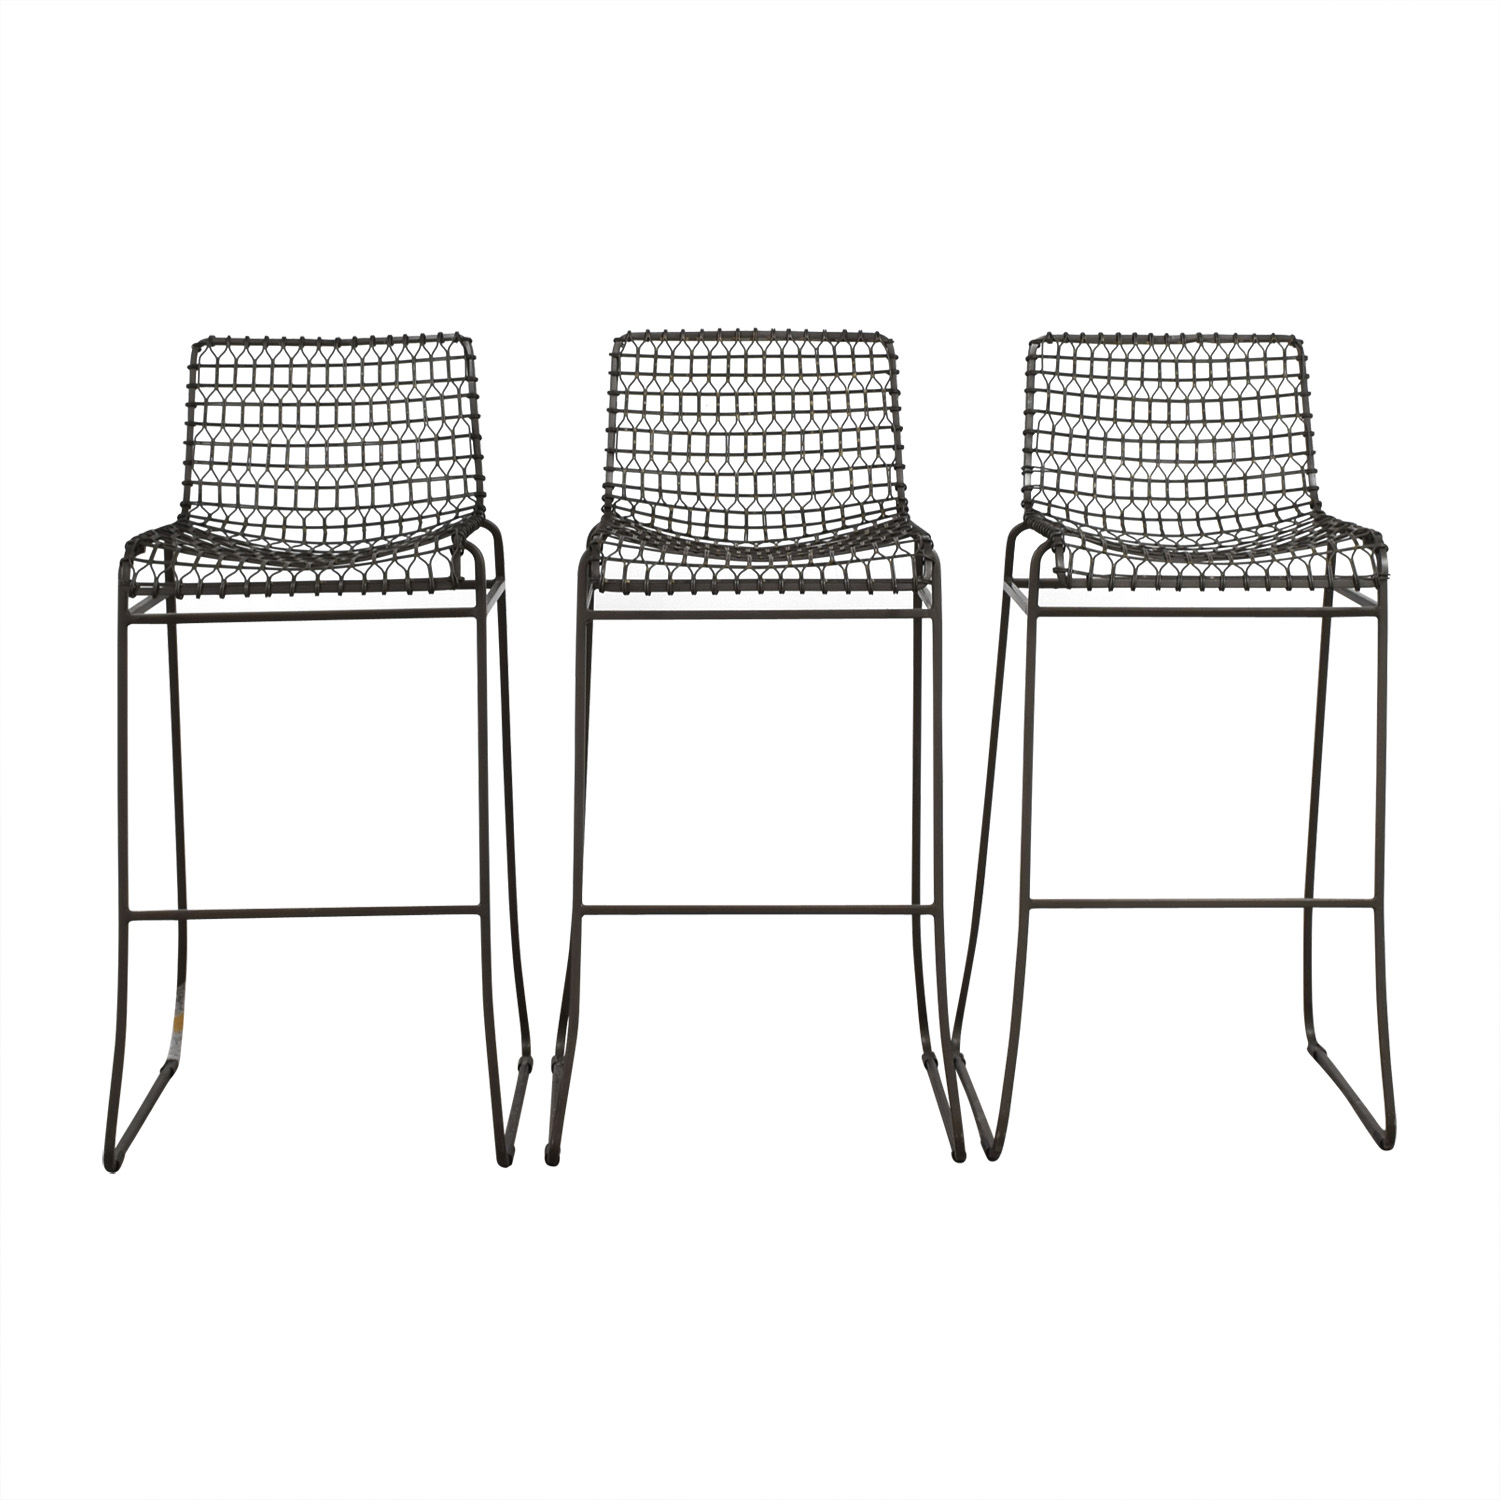 shop Crate & Barrel Metal Bar Stools Crate & Barrel Stools